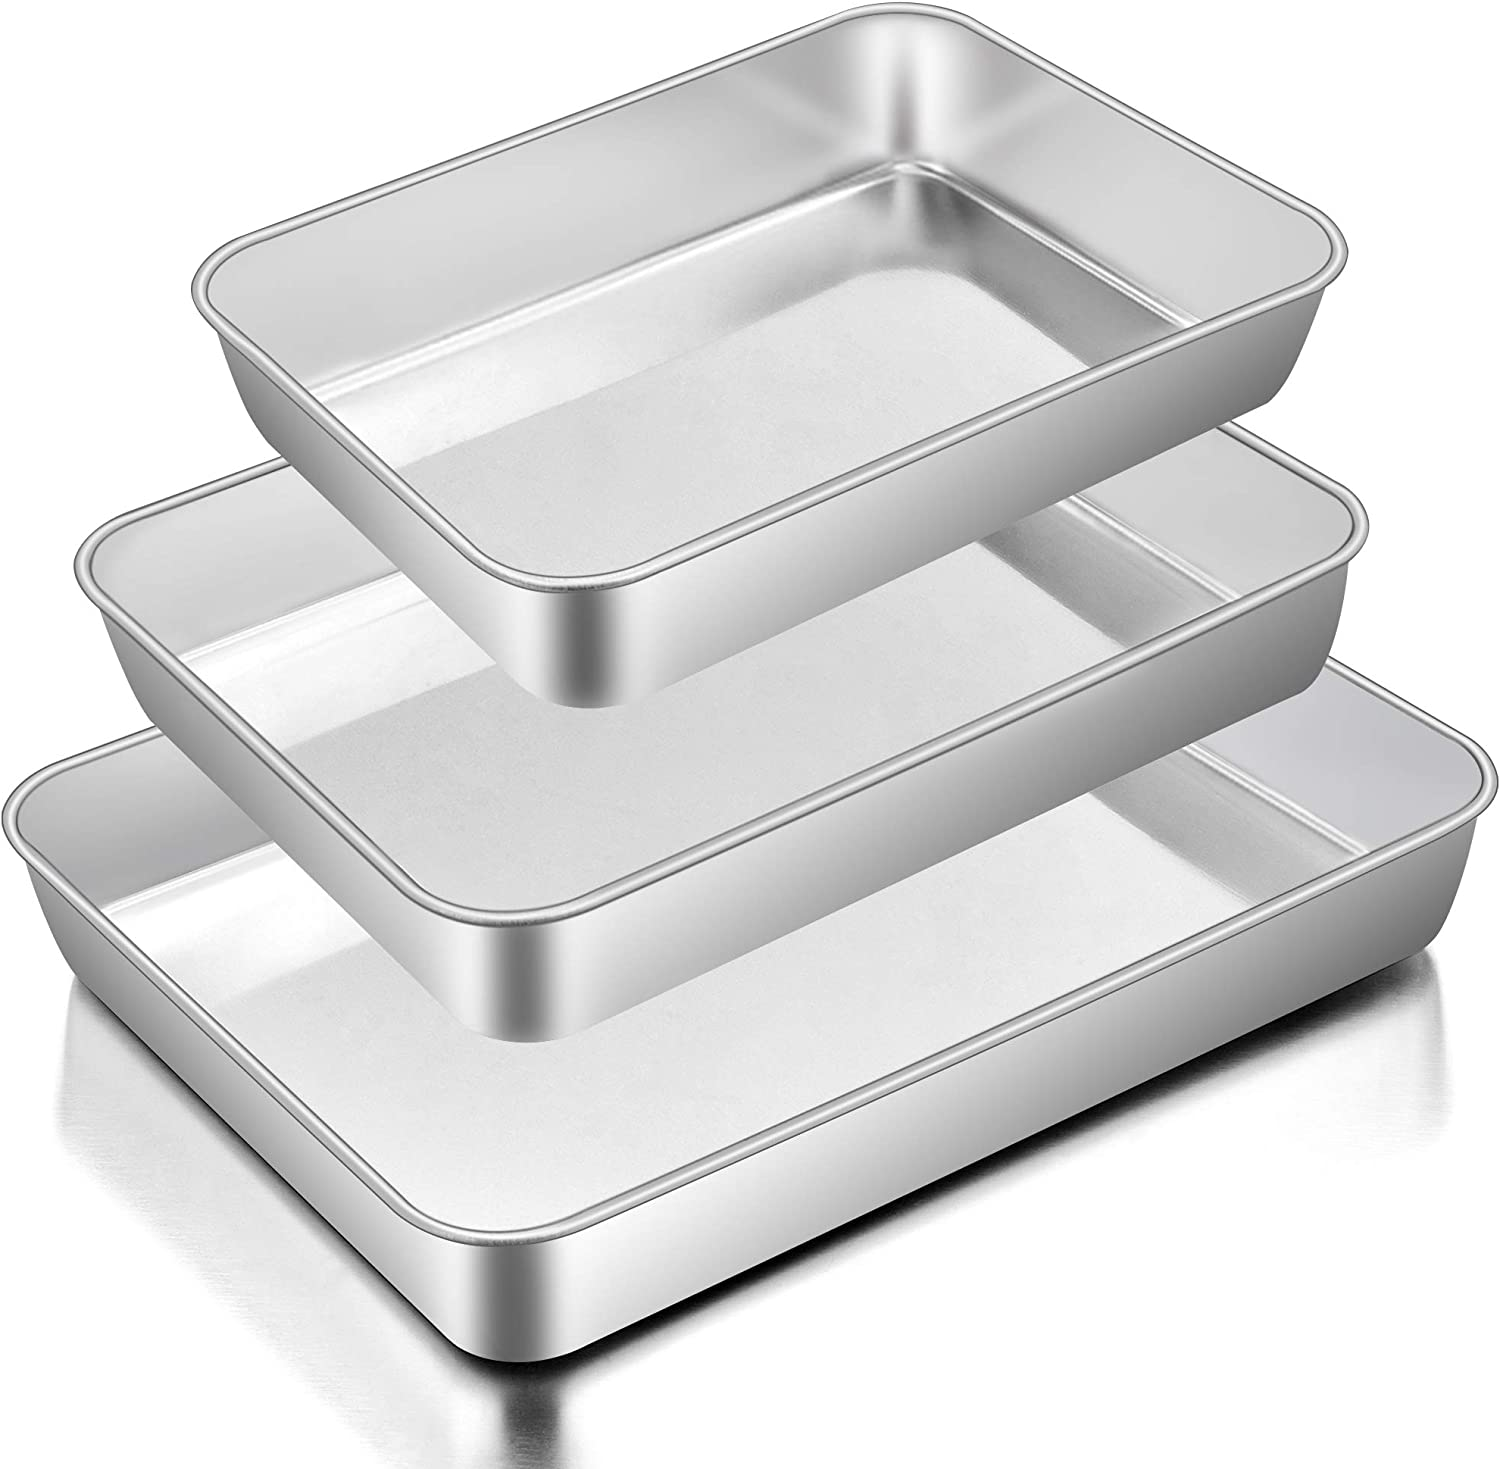 Baking Pans Set of 3, E-far Stainless Steel Sheet Cake Pan for Oven - 12.5/10.5/9.4Inch, Rectangle Bakeware Set for Cake Lasagna Brownie Casserole Cookie, Non-toxic & Healthy, Dishwasher Safe